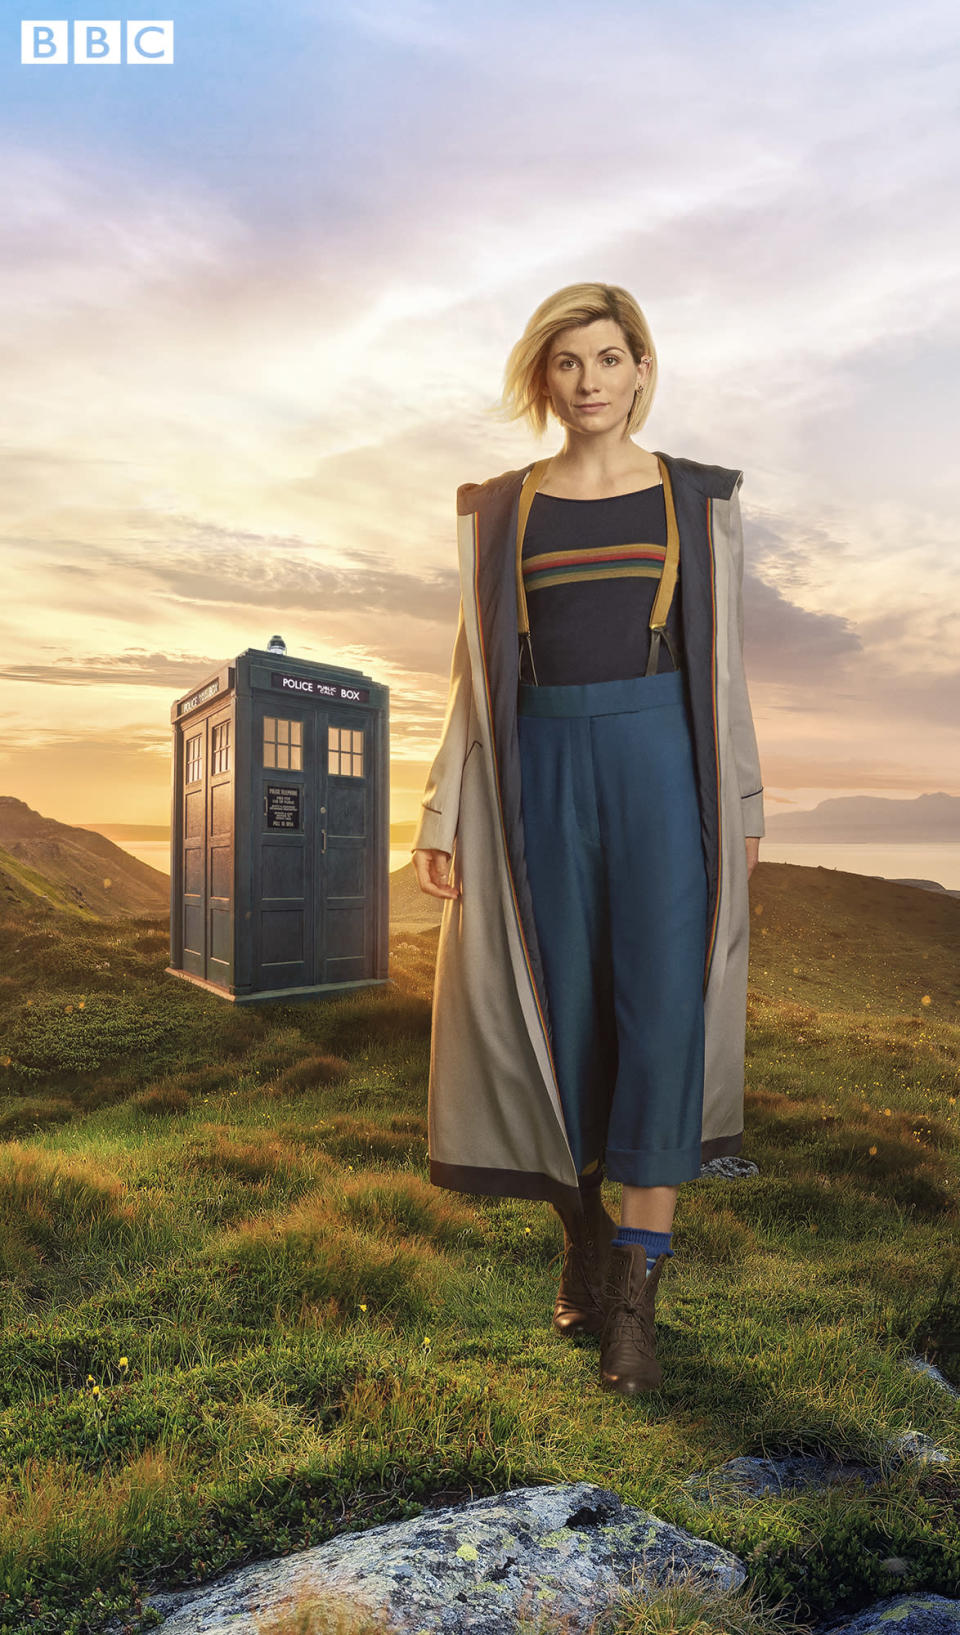 Jodie Whittaker's Doctor Who costume revealed. (BBC/Steve Schofield)